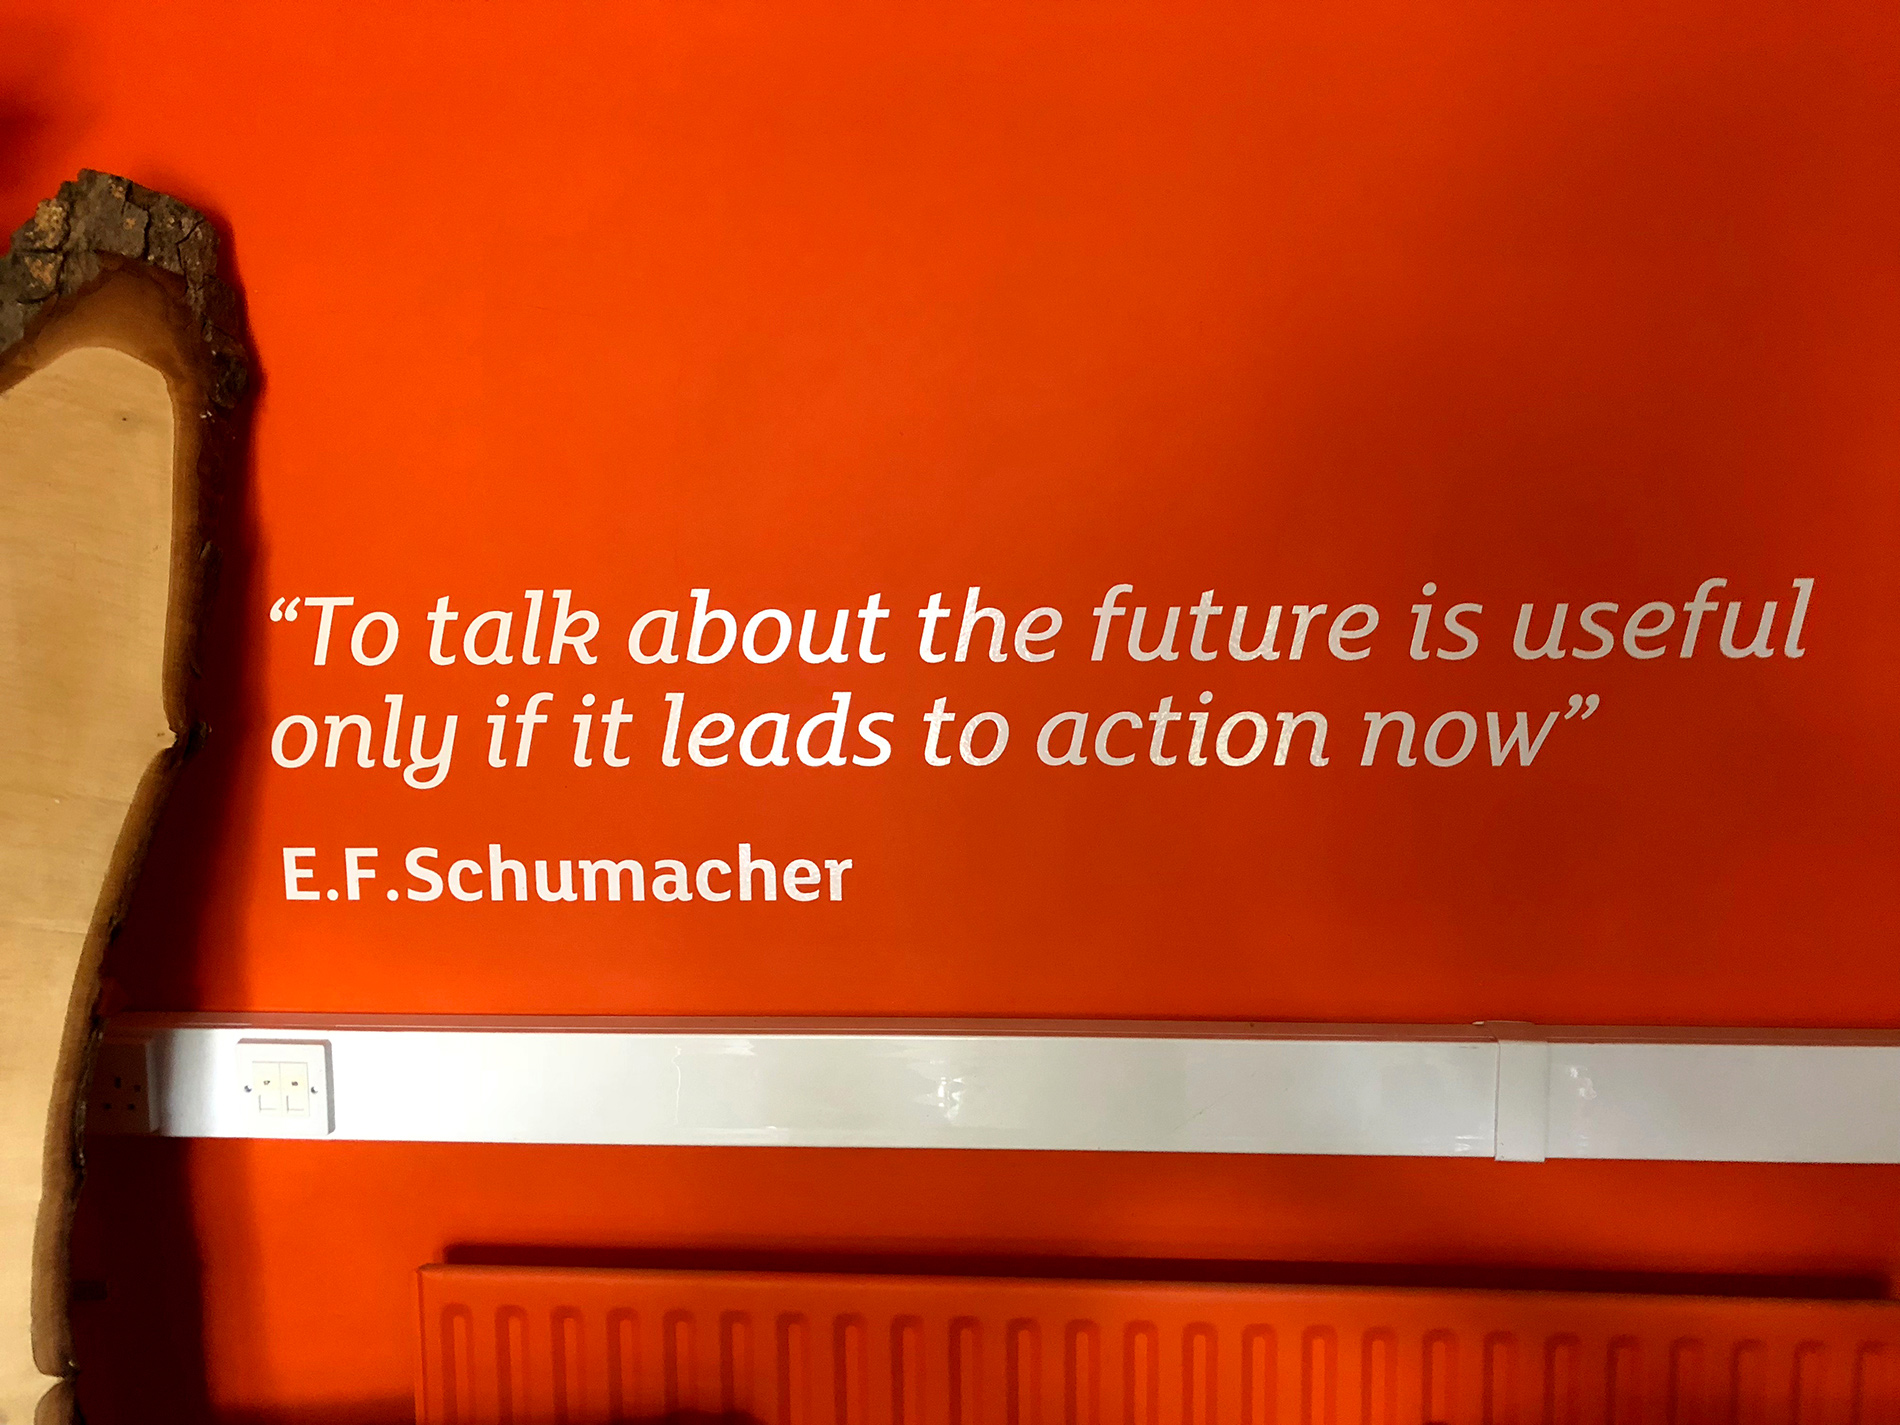 Quote on wall of Schumacher College in Devon, UK, where the Transition Design course took place